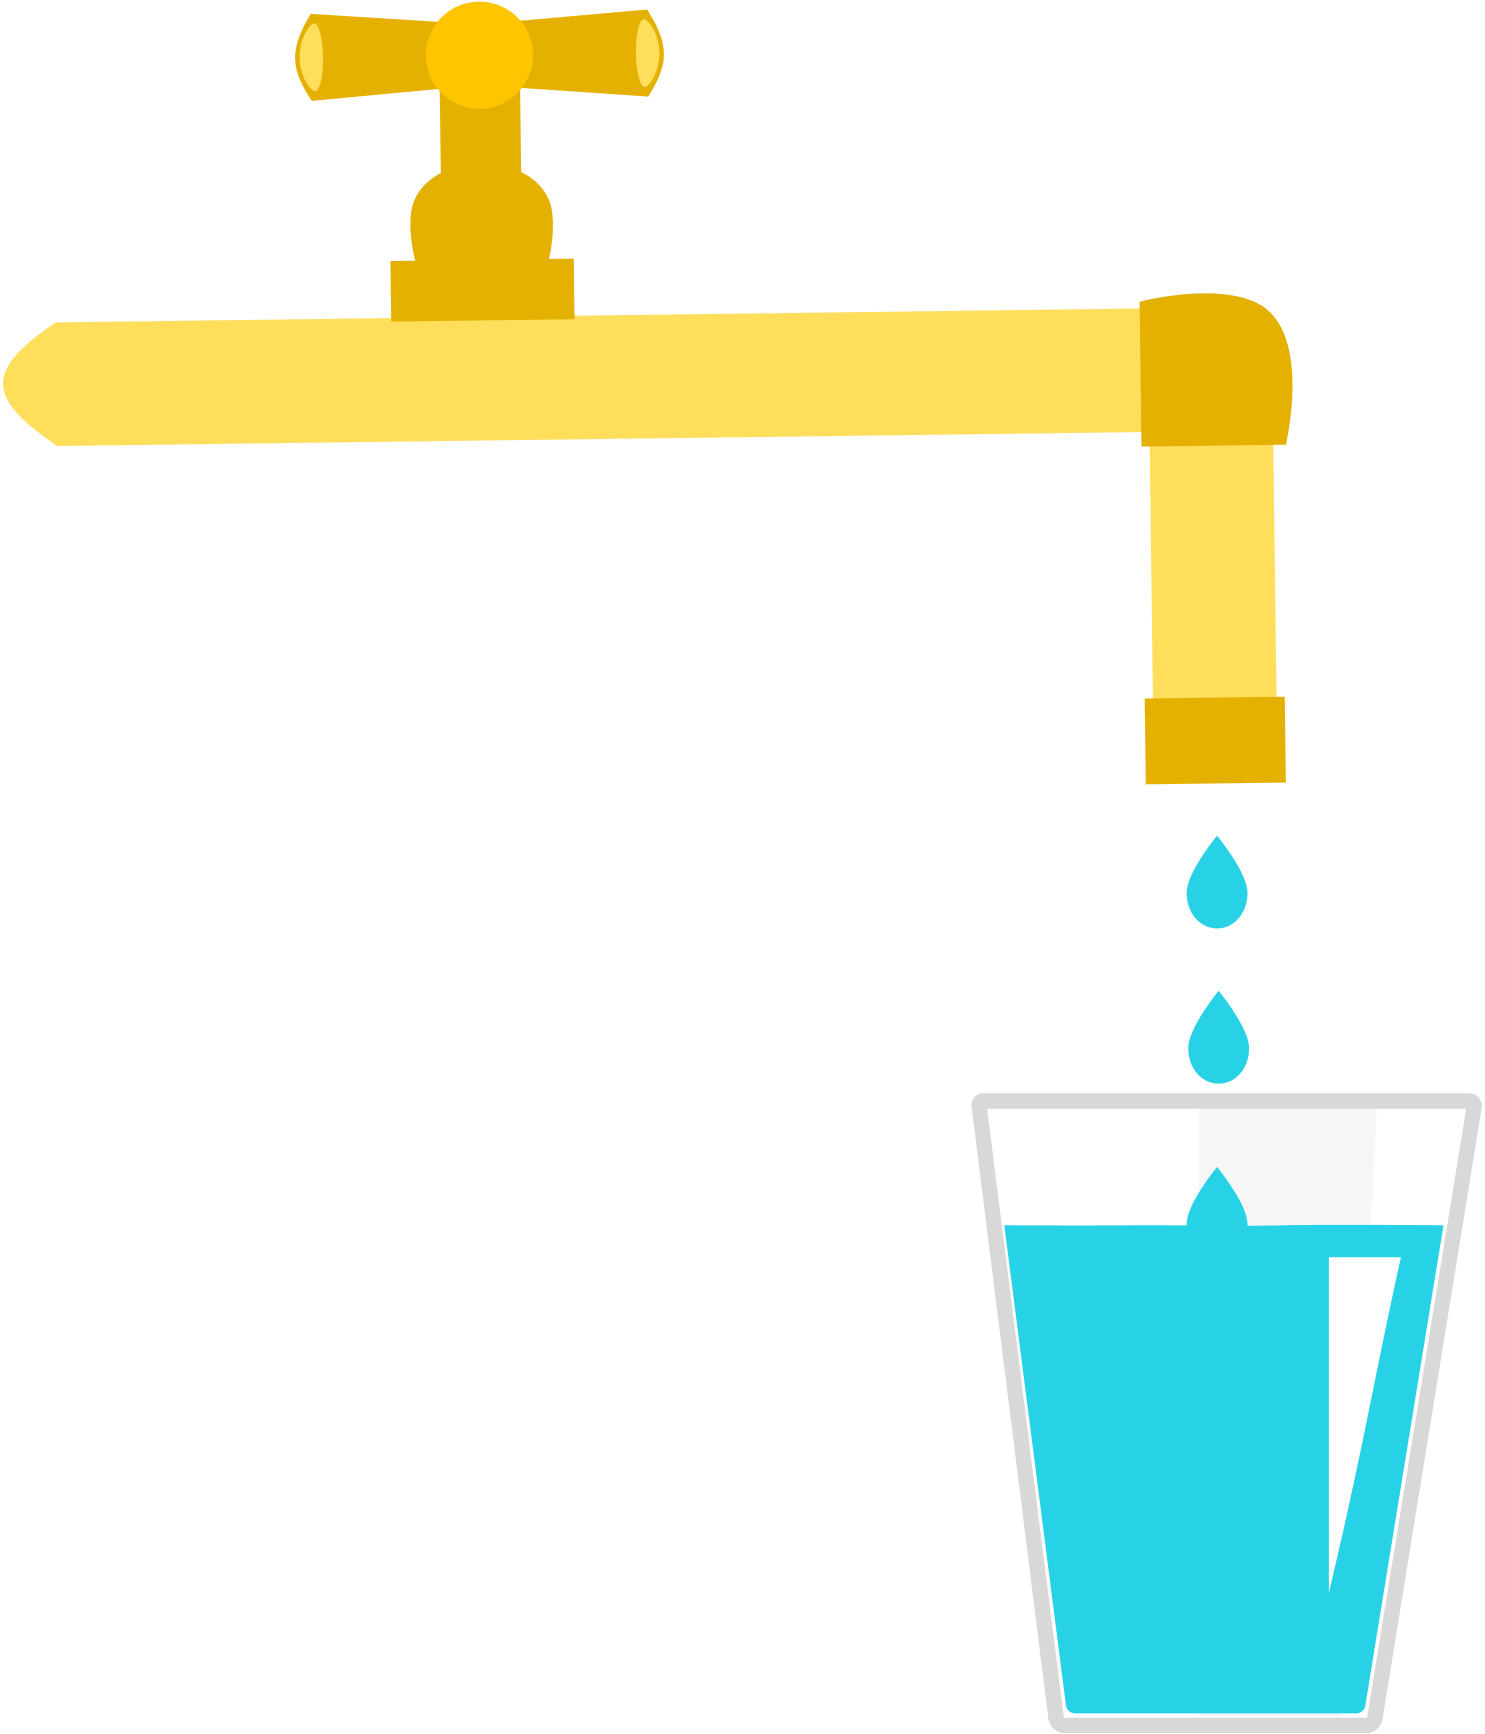 Average and instantaneous rate of change brilliant math water drips into the cup below at a steady rate what can we say about the rate of change of the height of water level biocorpaavc